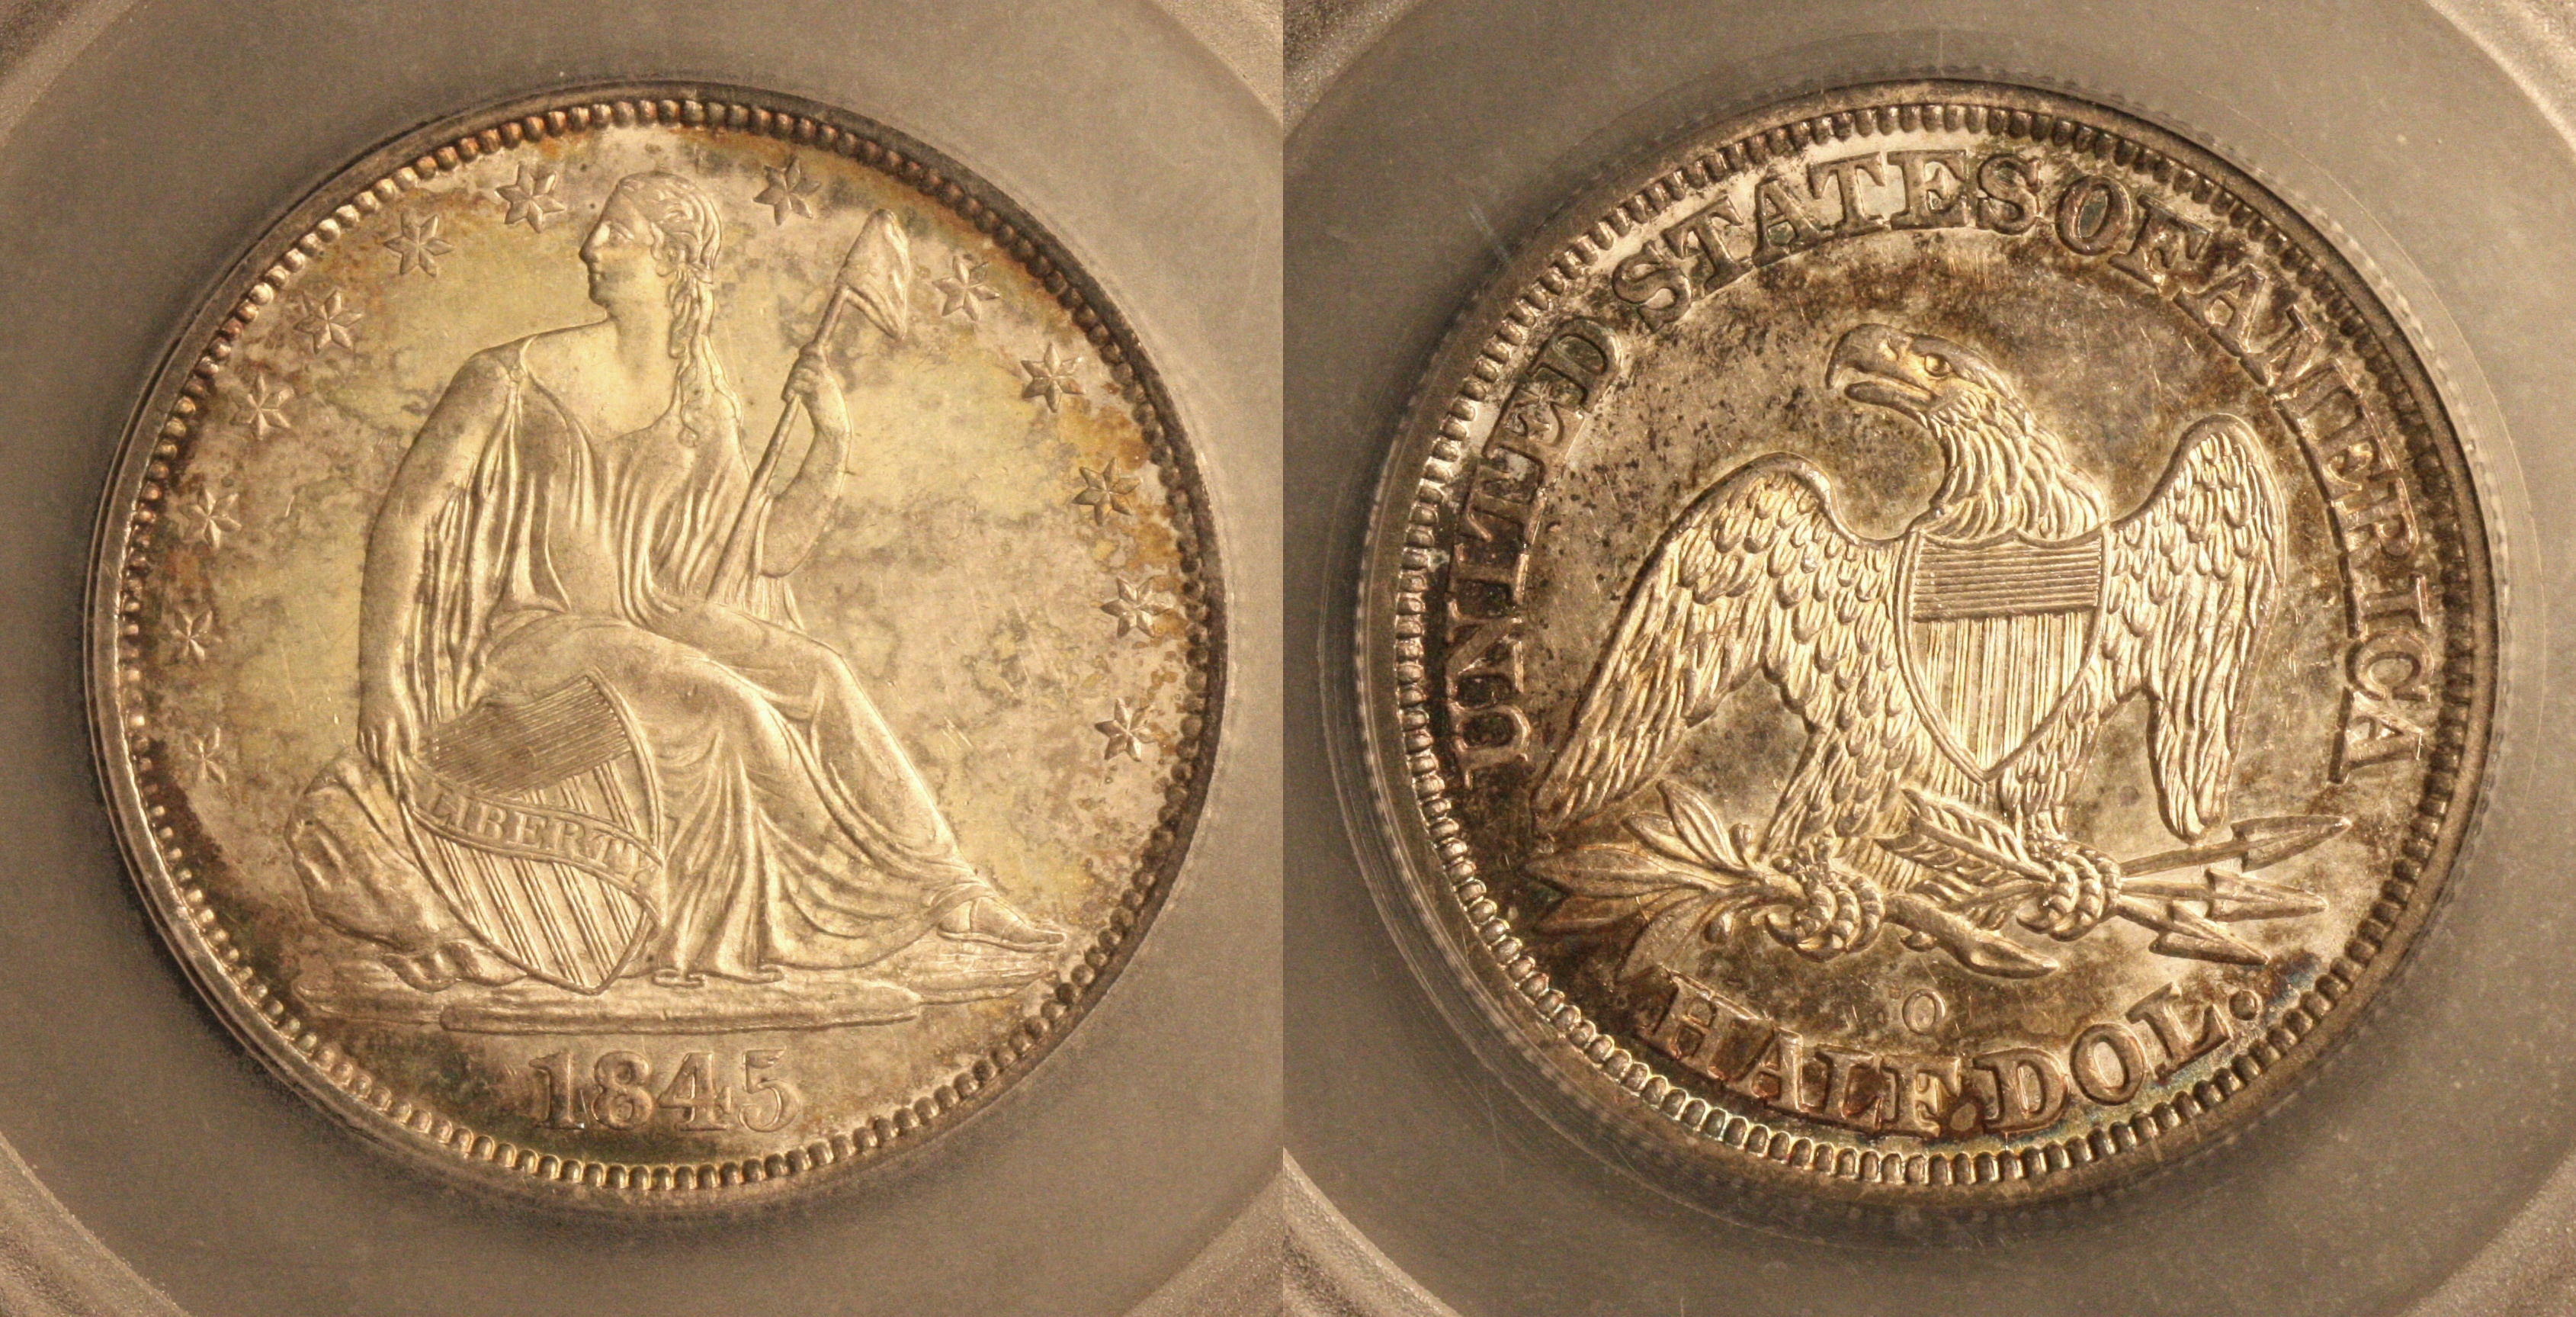 1845-O Seated Liberty Half Dollar SEGS MS-64 camera